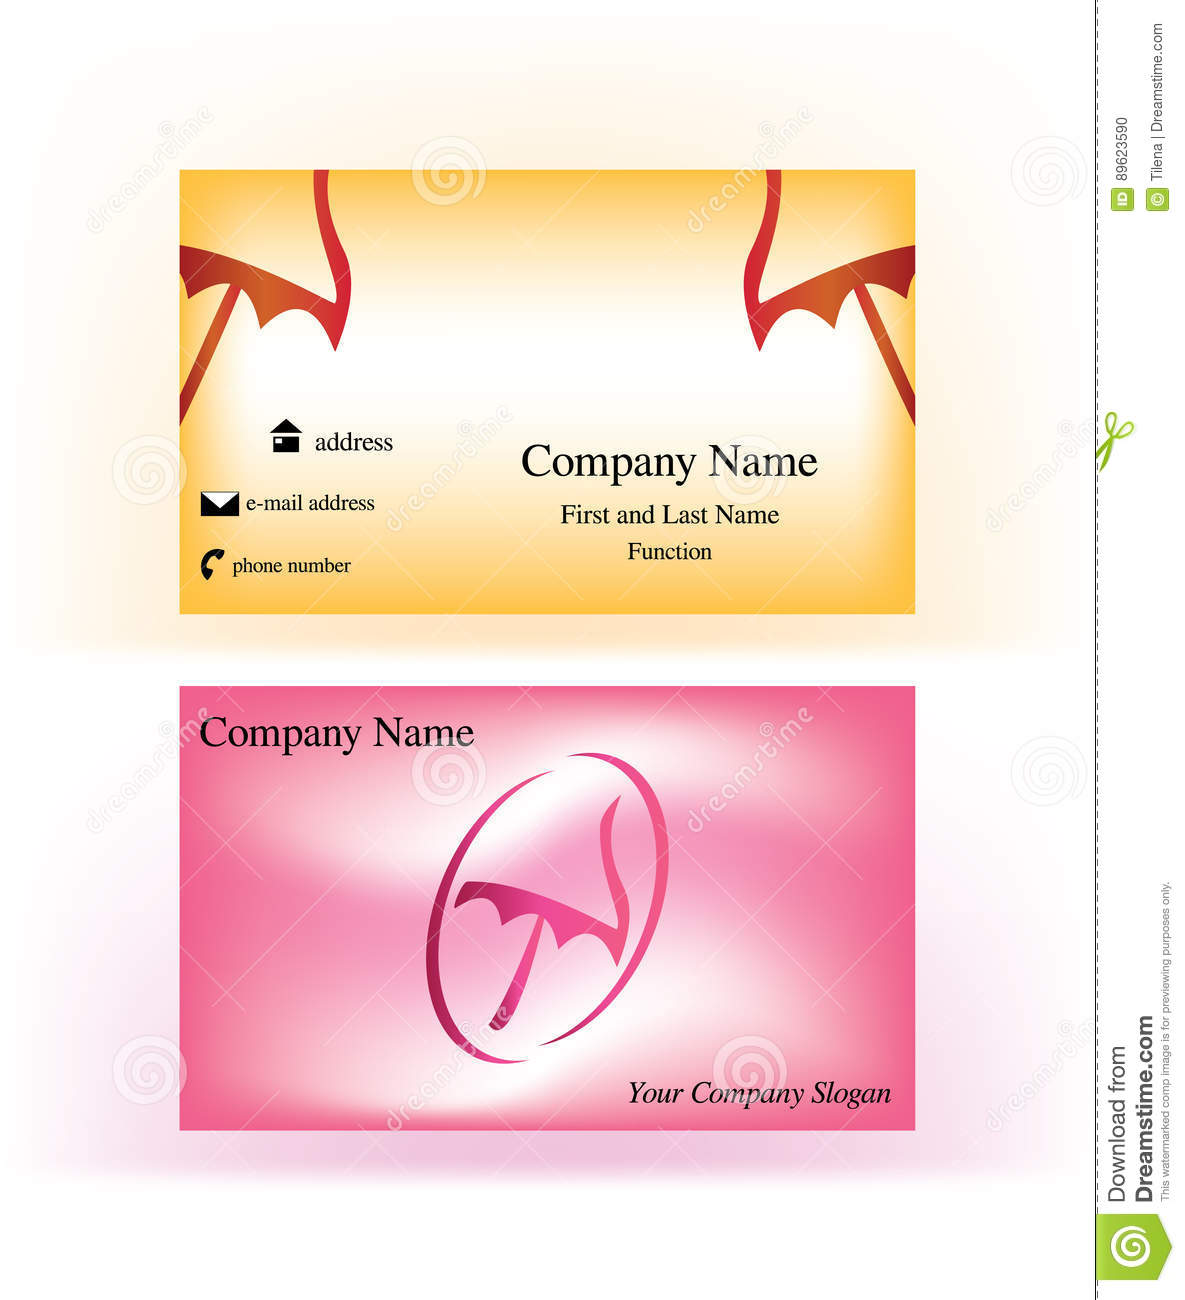 Beach Theme Card Stock: Colorful Business Cards With Umbrella Logo Symbol Stock